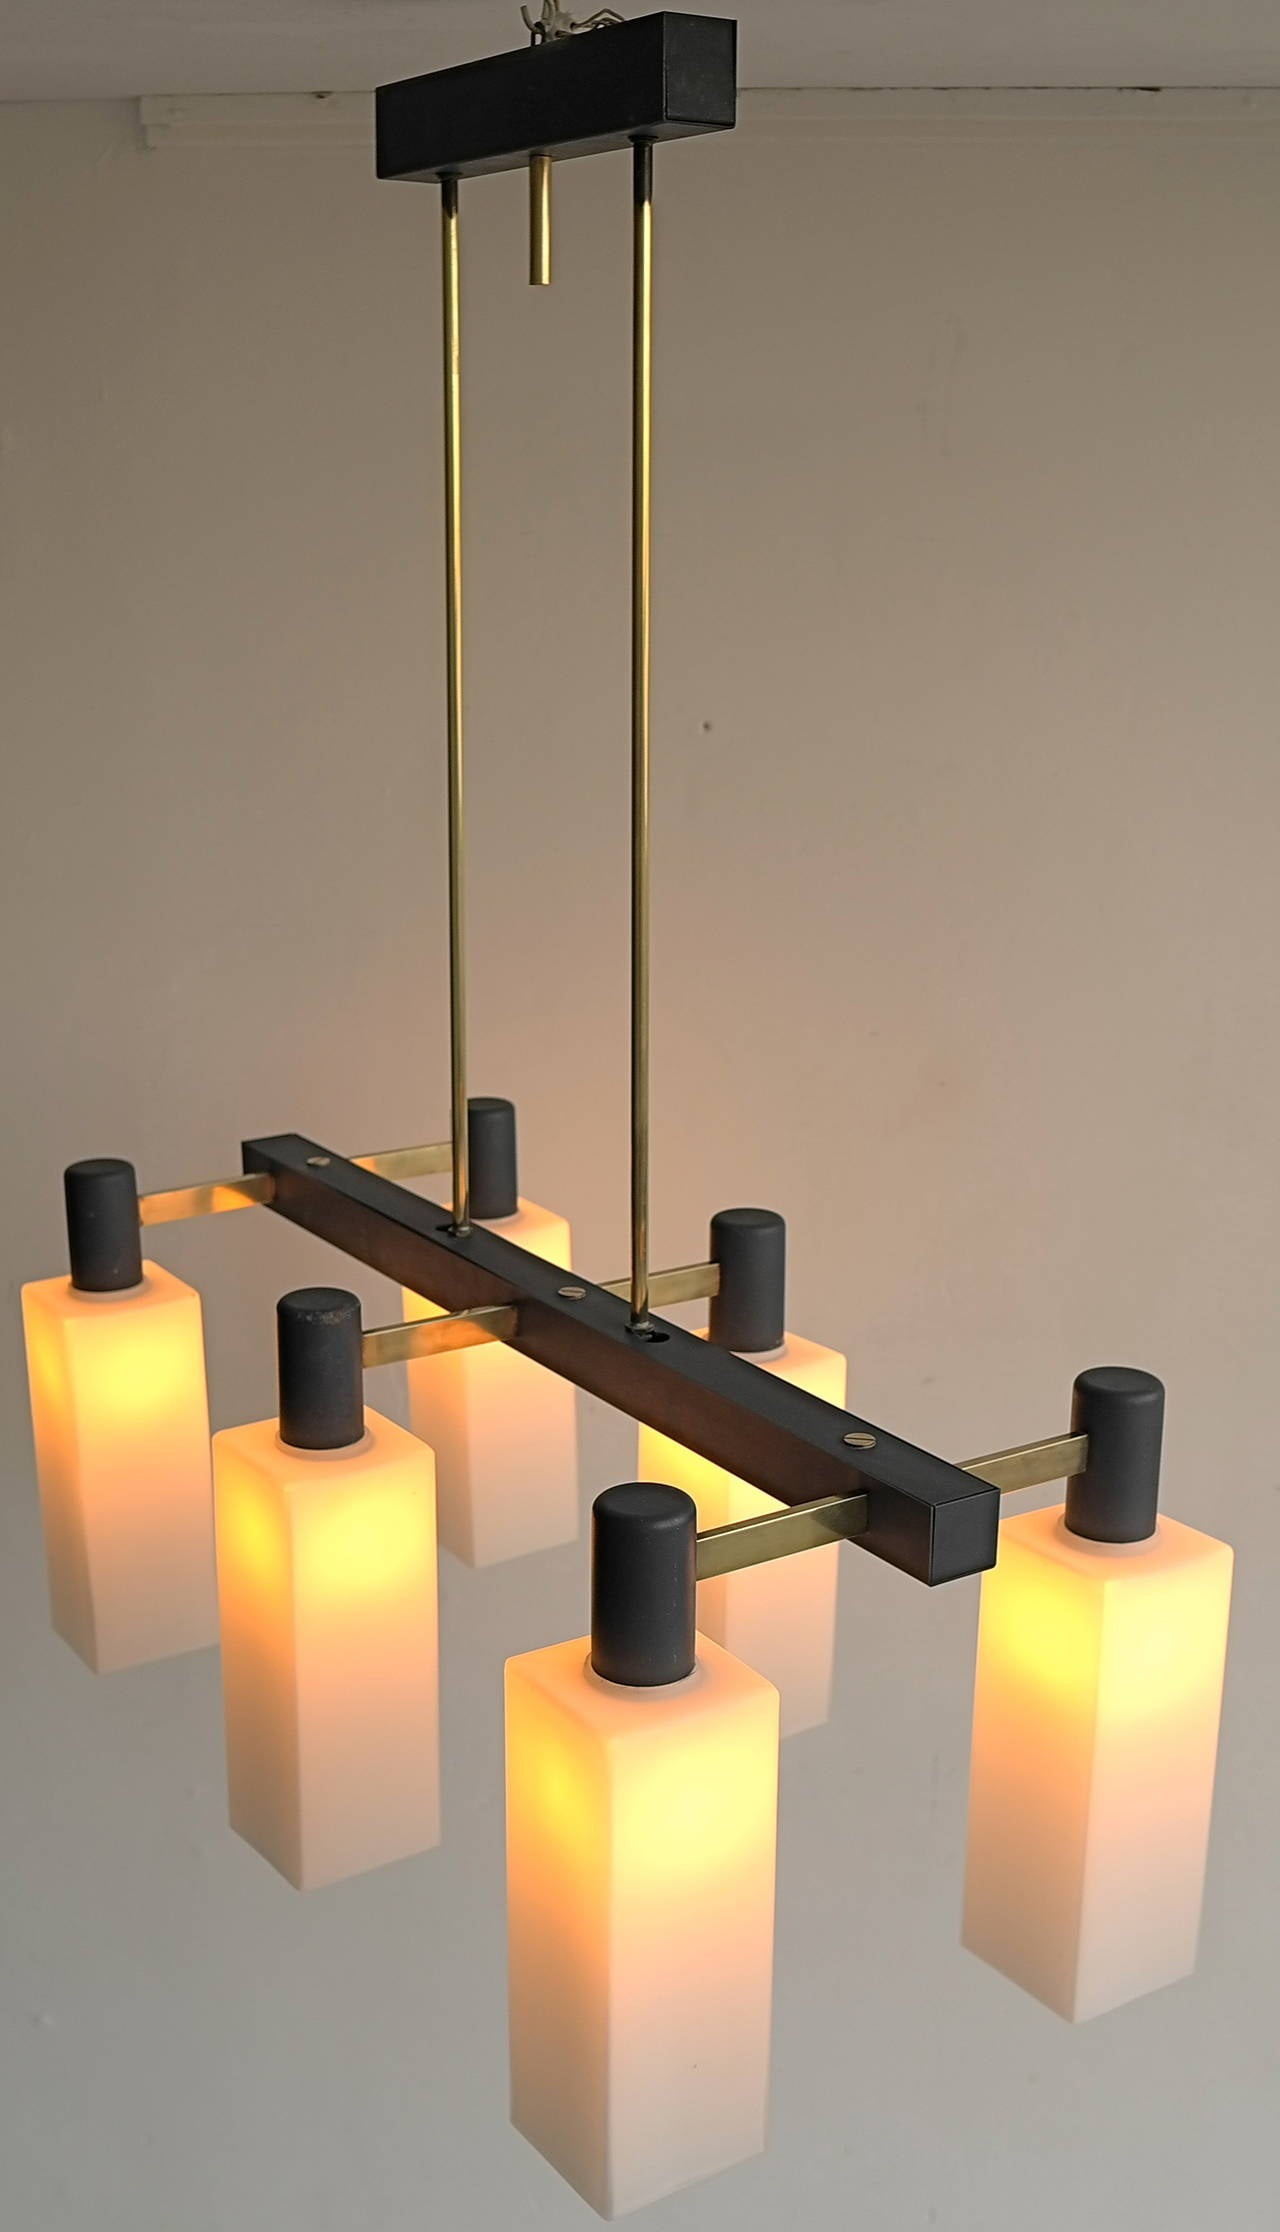 Italian Monumental Pendant Lamp, 1960s In Good Condition For Sale In Den Haag, NL